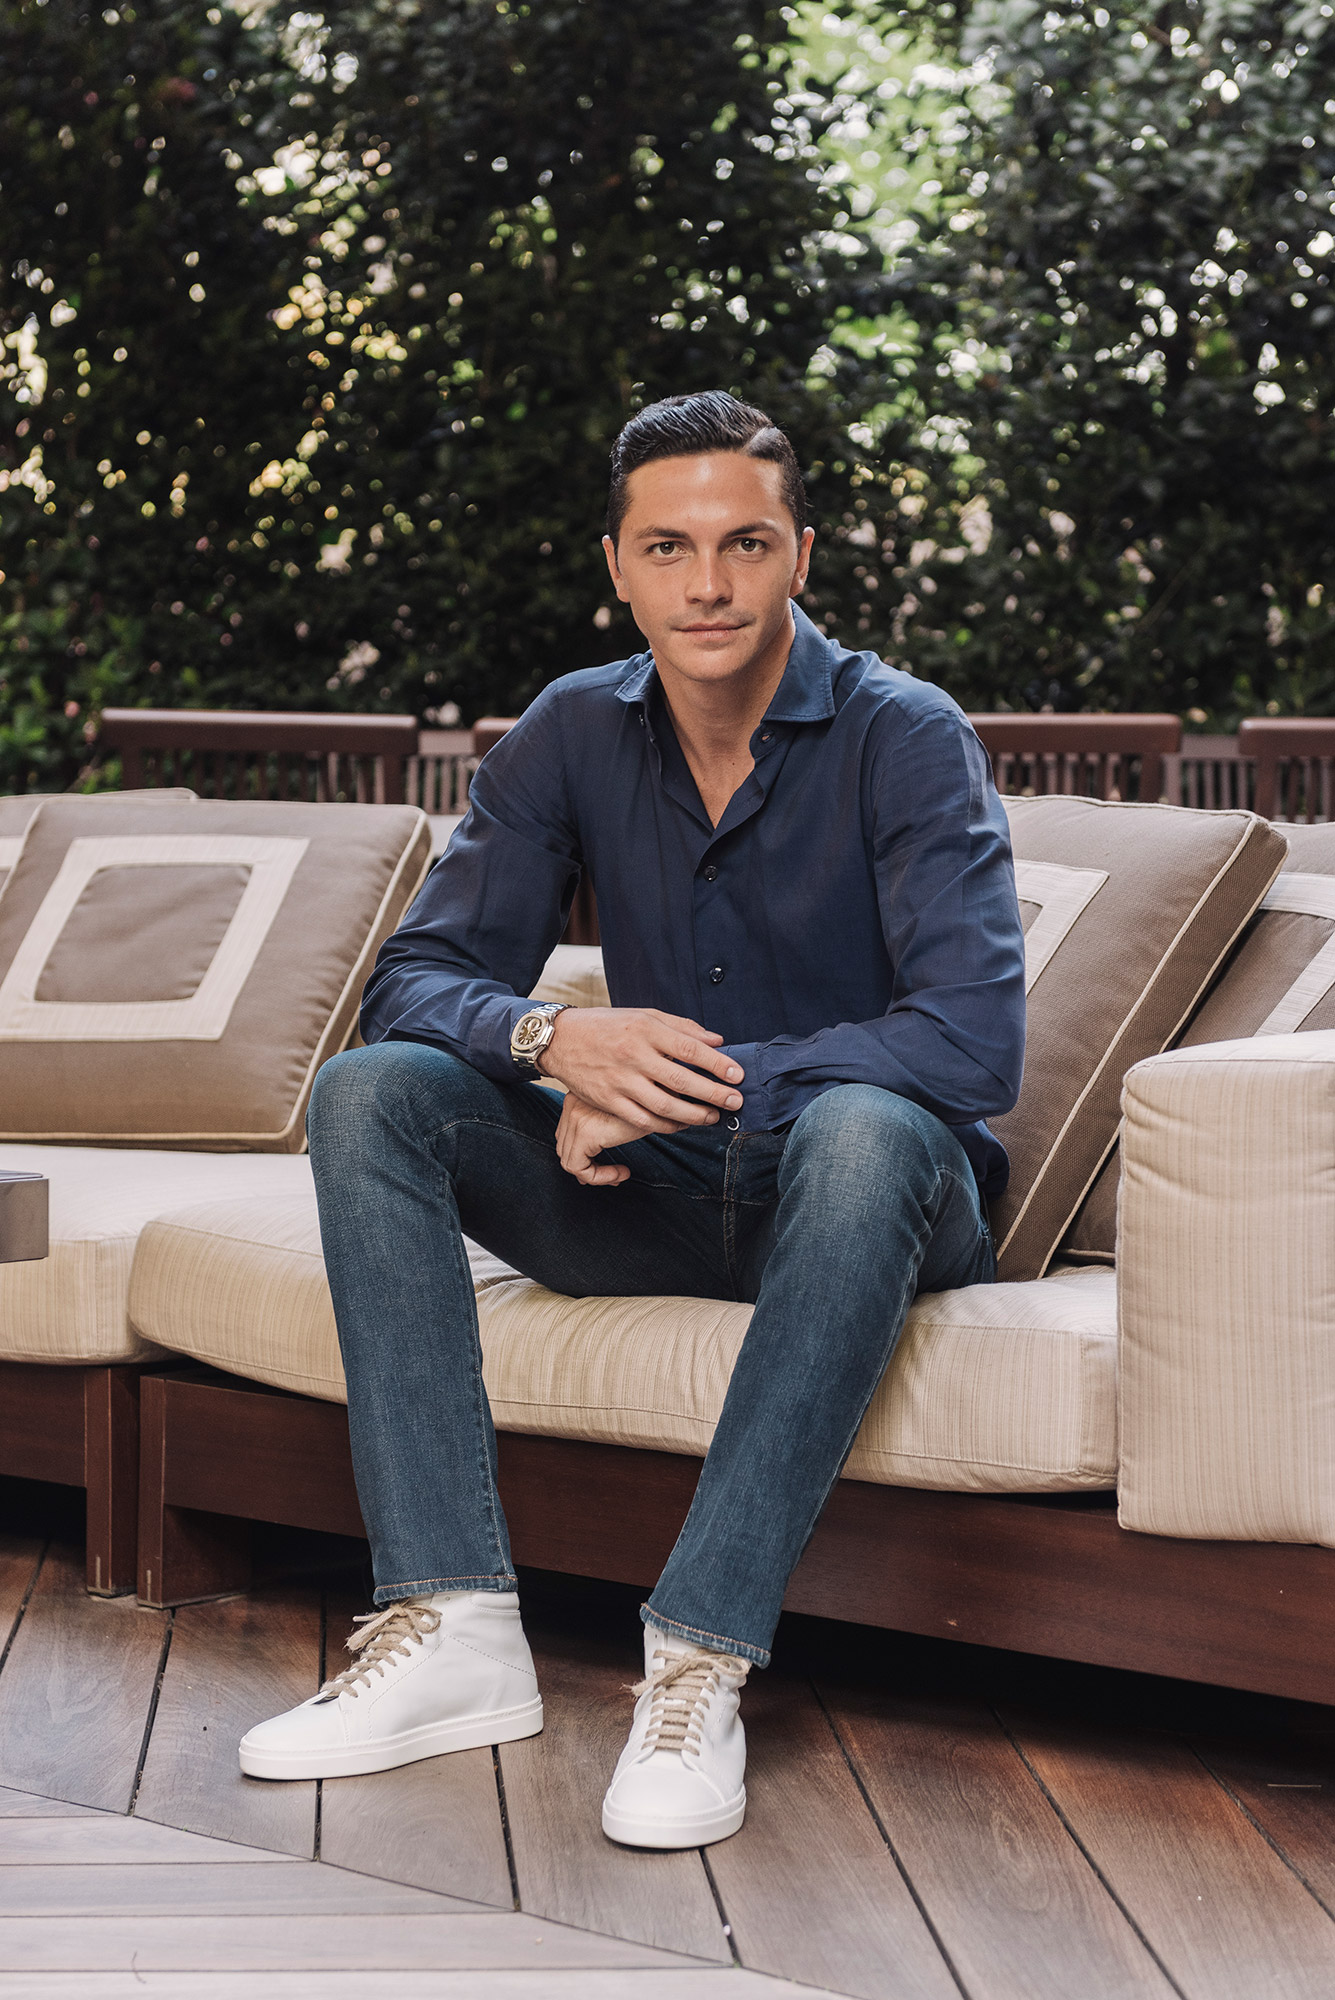 Umberto and his company Yatay are trying to bridge the gap between Italian designer and ethical.